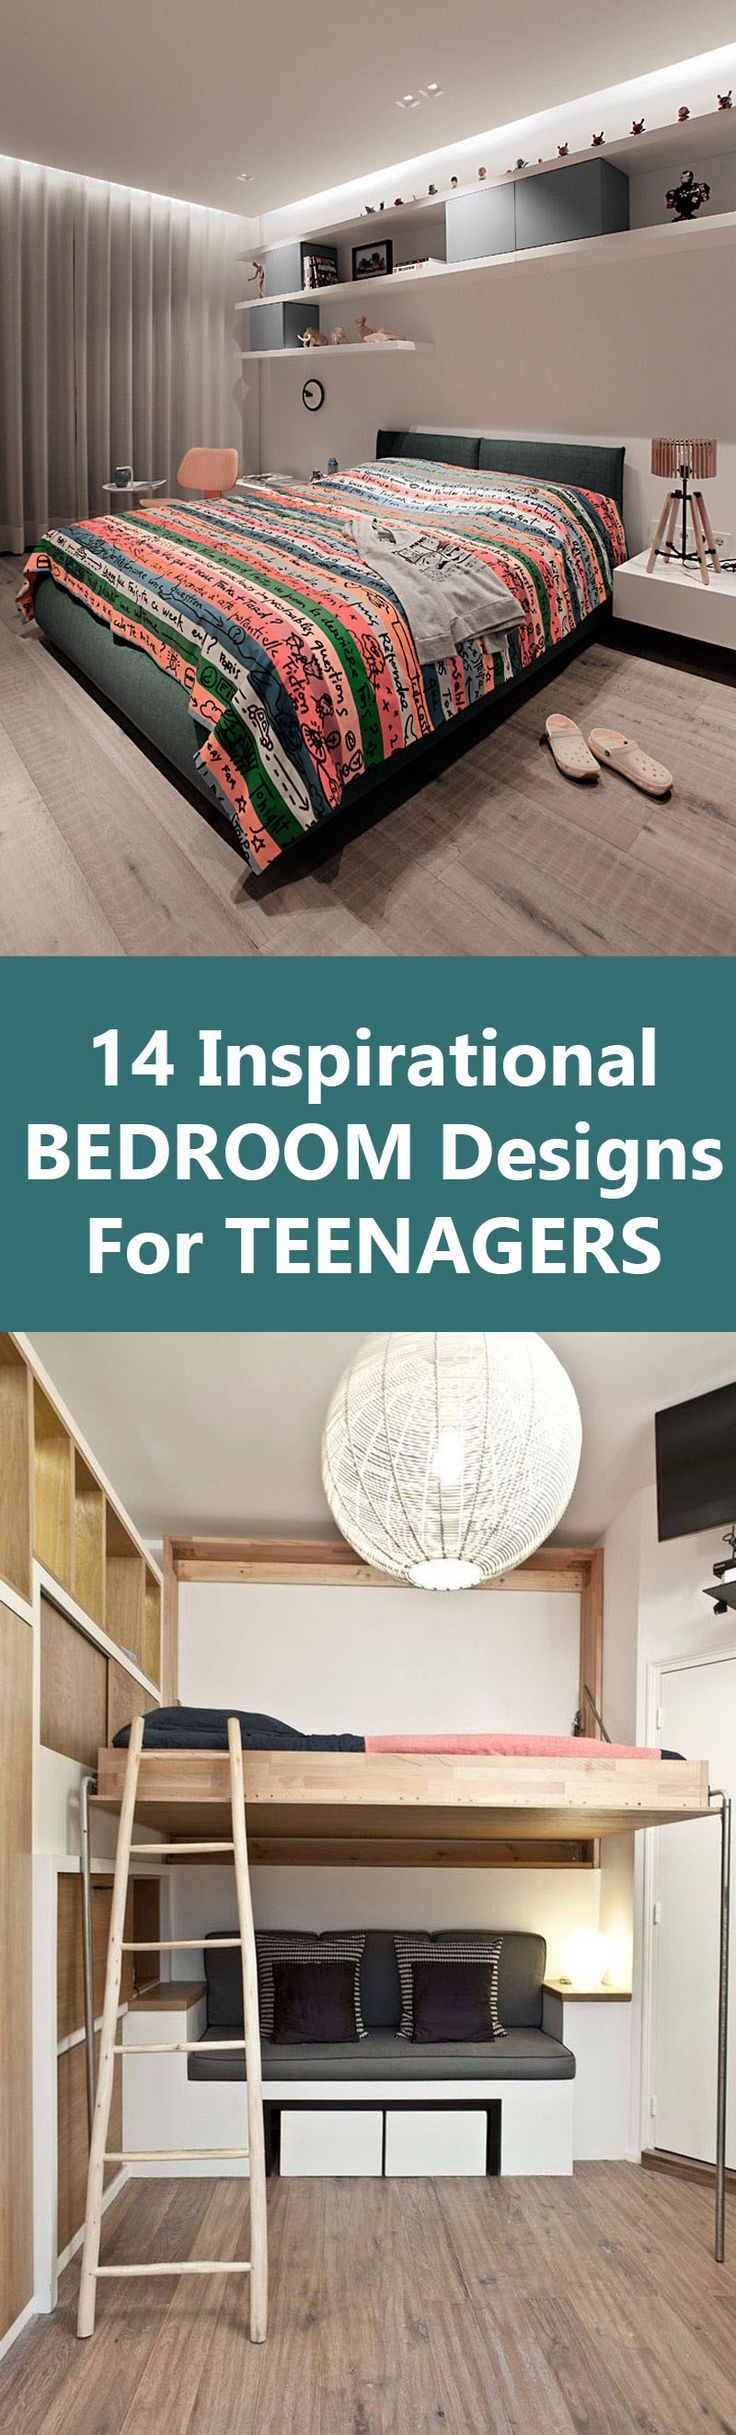 14 Inspirational Bedrooms For Teenagers | Warner Home Group of Keller Williams Realty www.warnerhomegroup.com  C: 615.804.6029 O: 615.778.1818